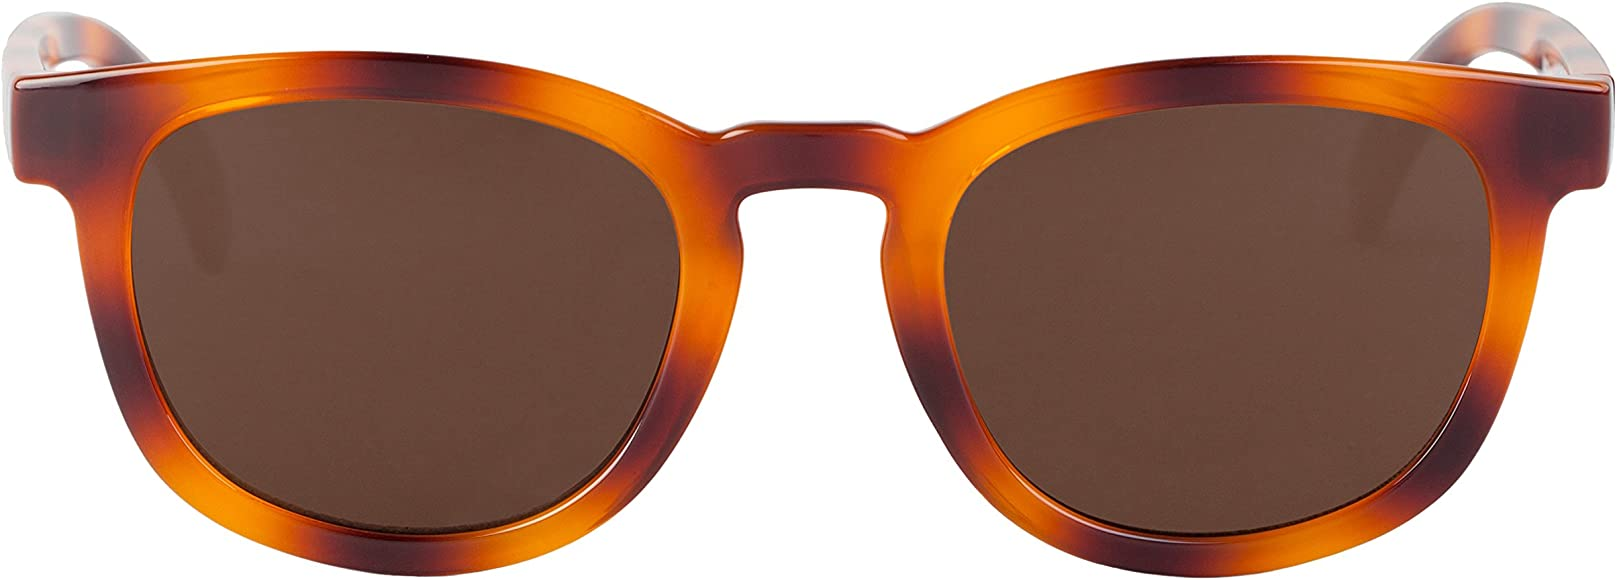 MR.BOHO, Tortoise brera with brown classical lenses - Gafas De Sol unisex multicolor (carey), talla única